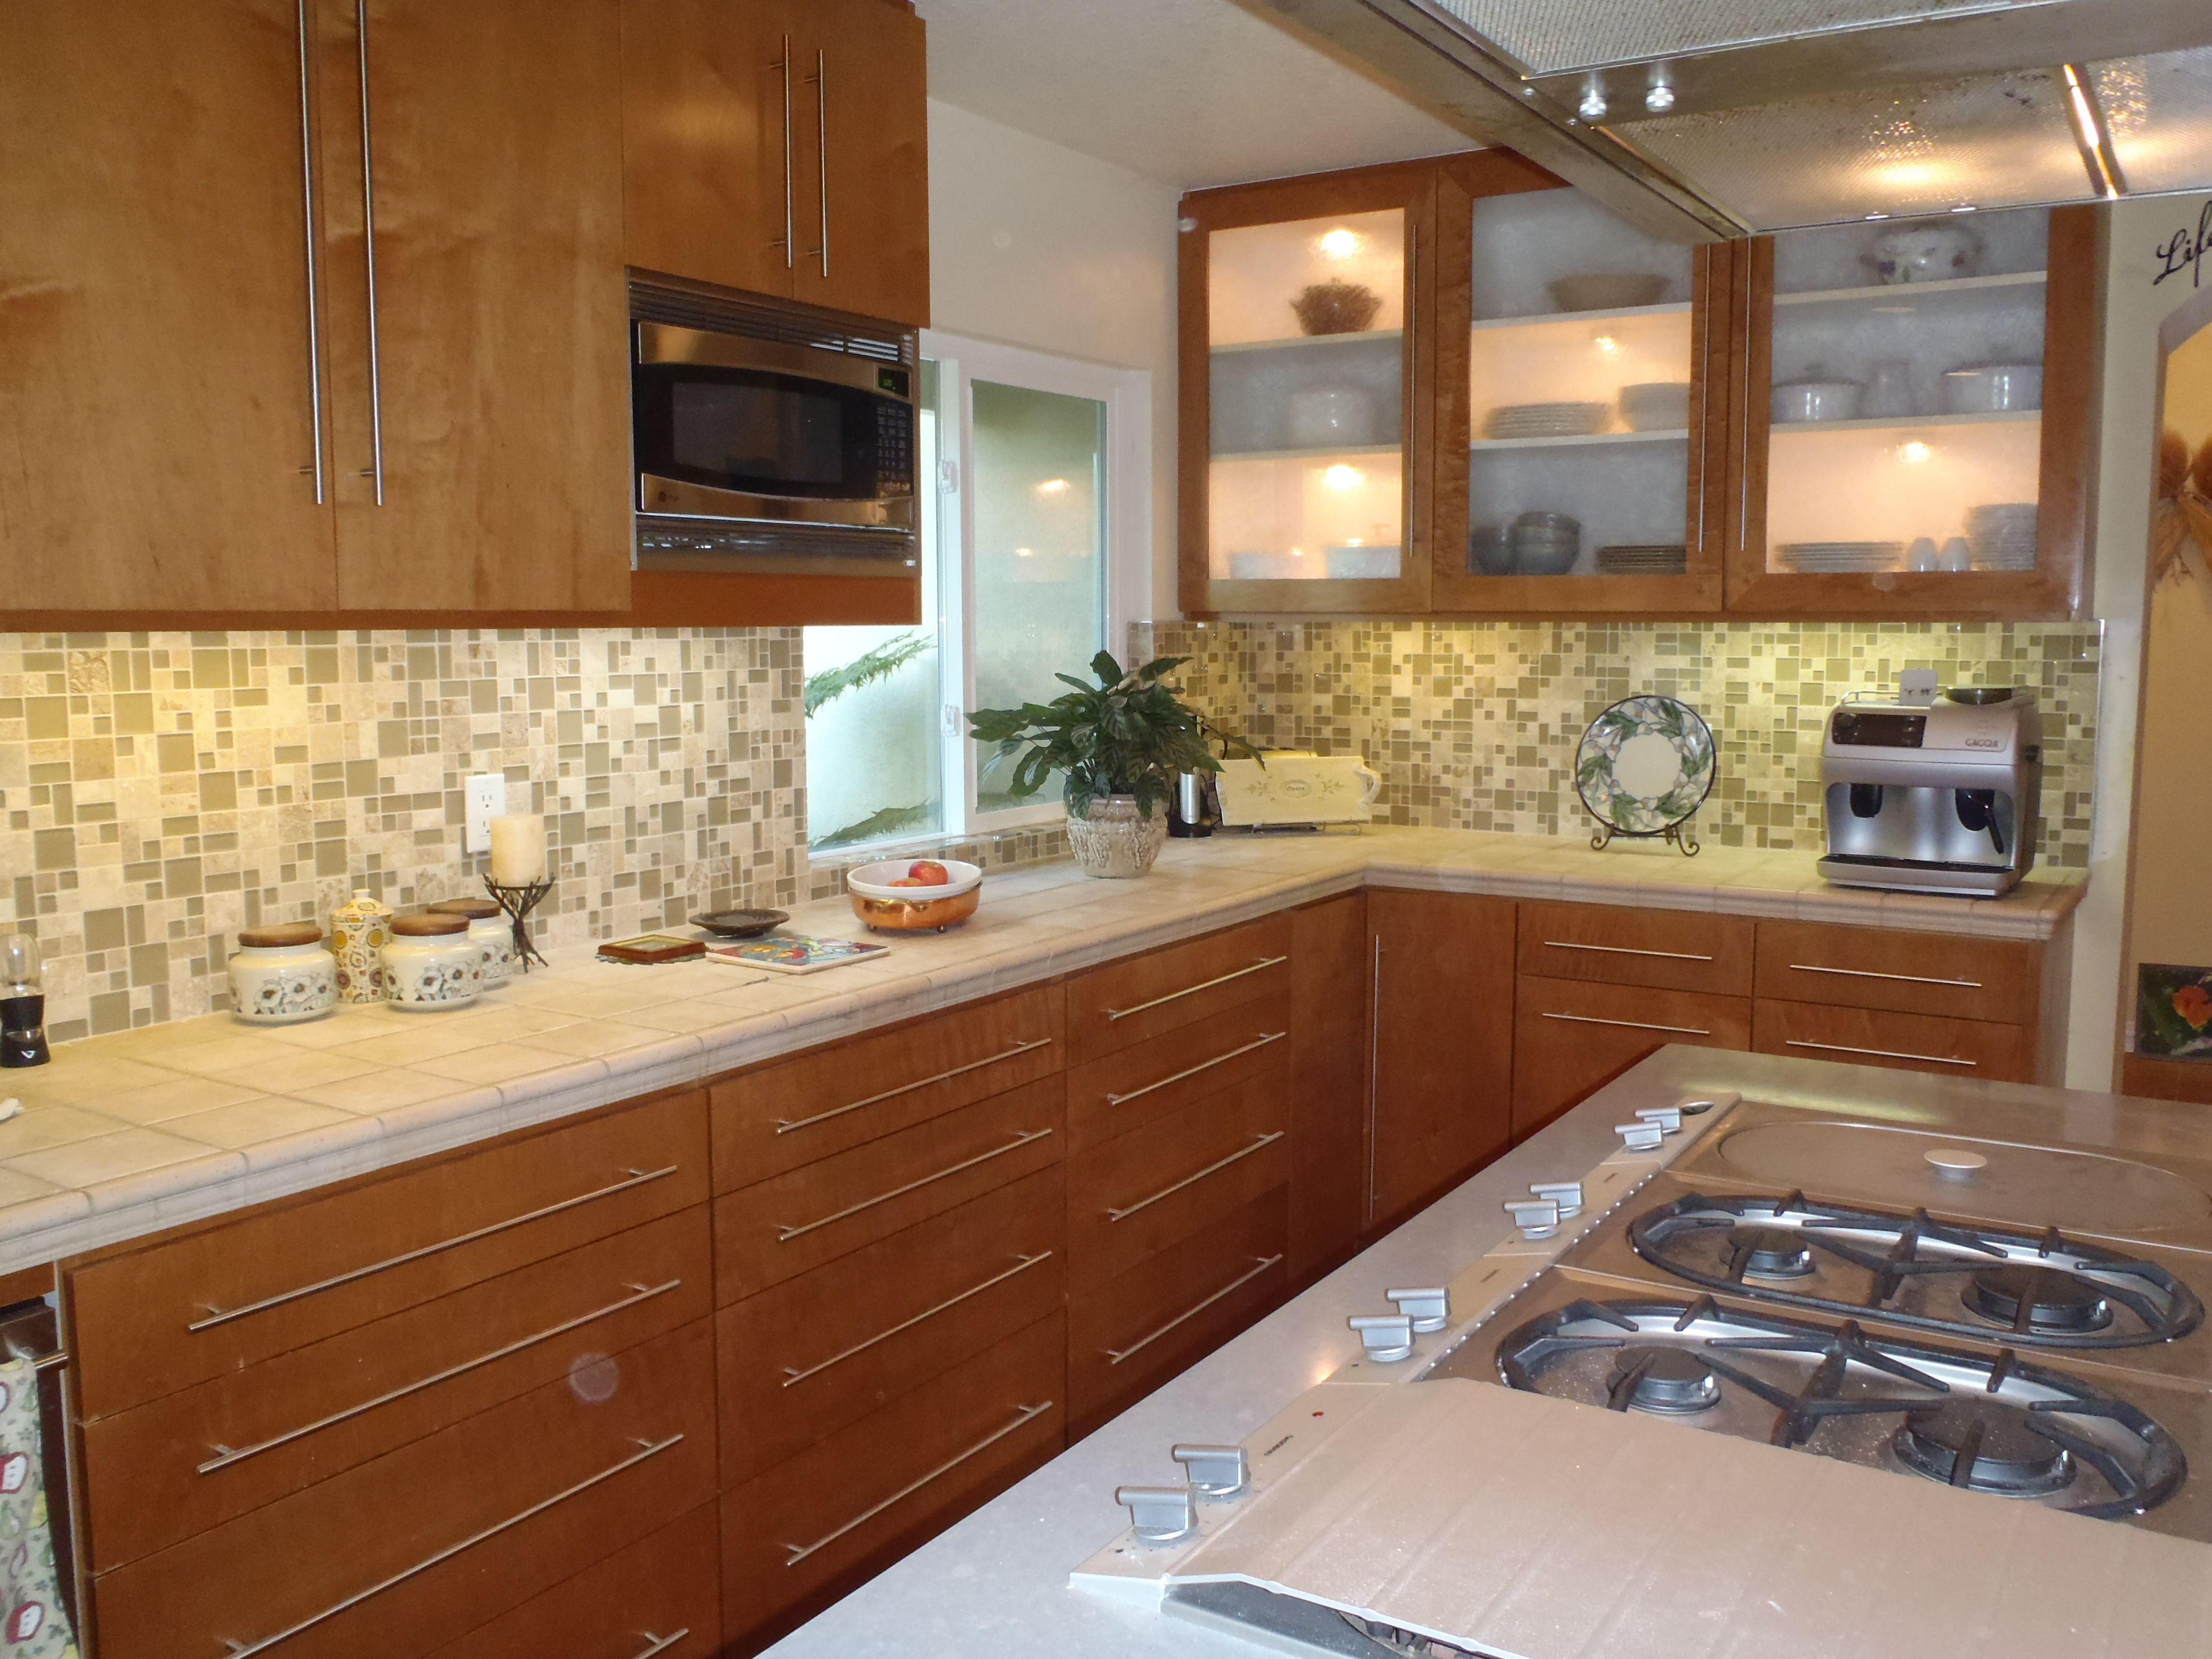 Kitchen Remodel Cabinetry, Tile Countertops, And Glass Mosaic Backsplash By